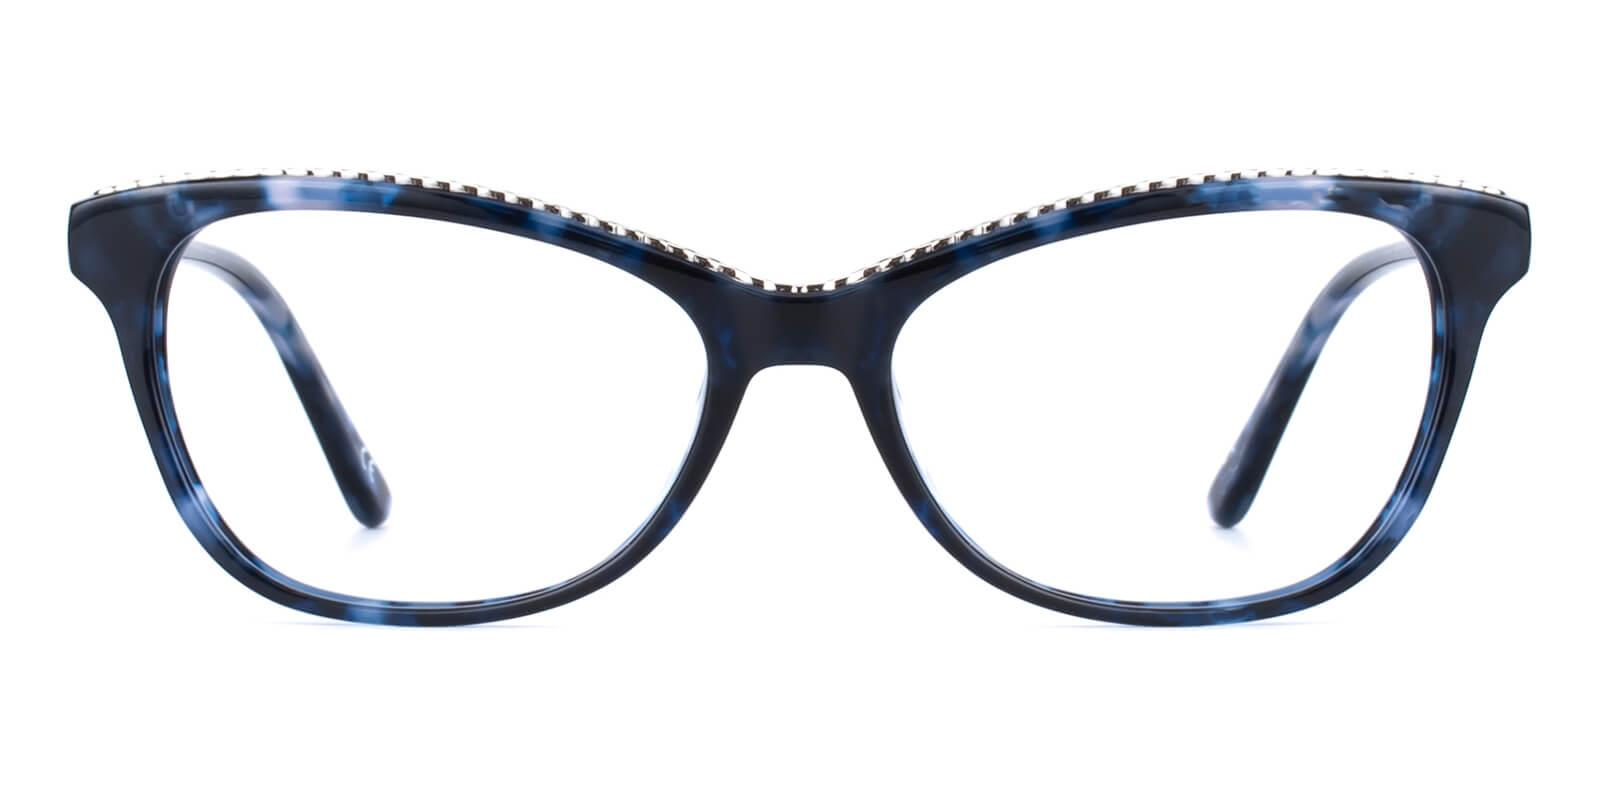 Her-Striped-Cat-Acetate-Eyeglasses-additional2